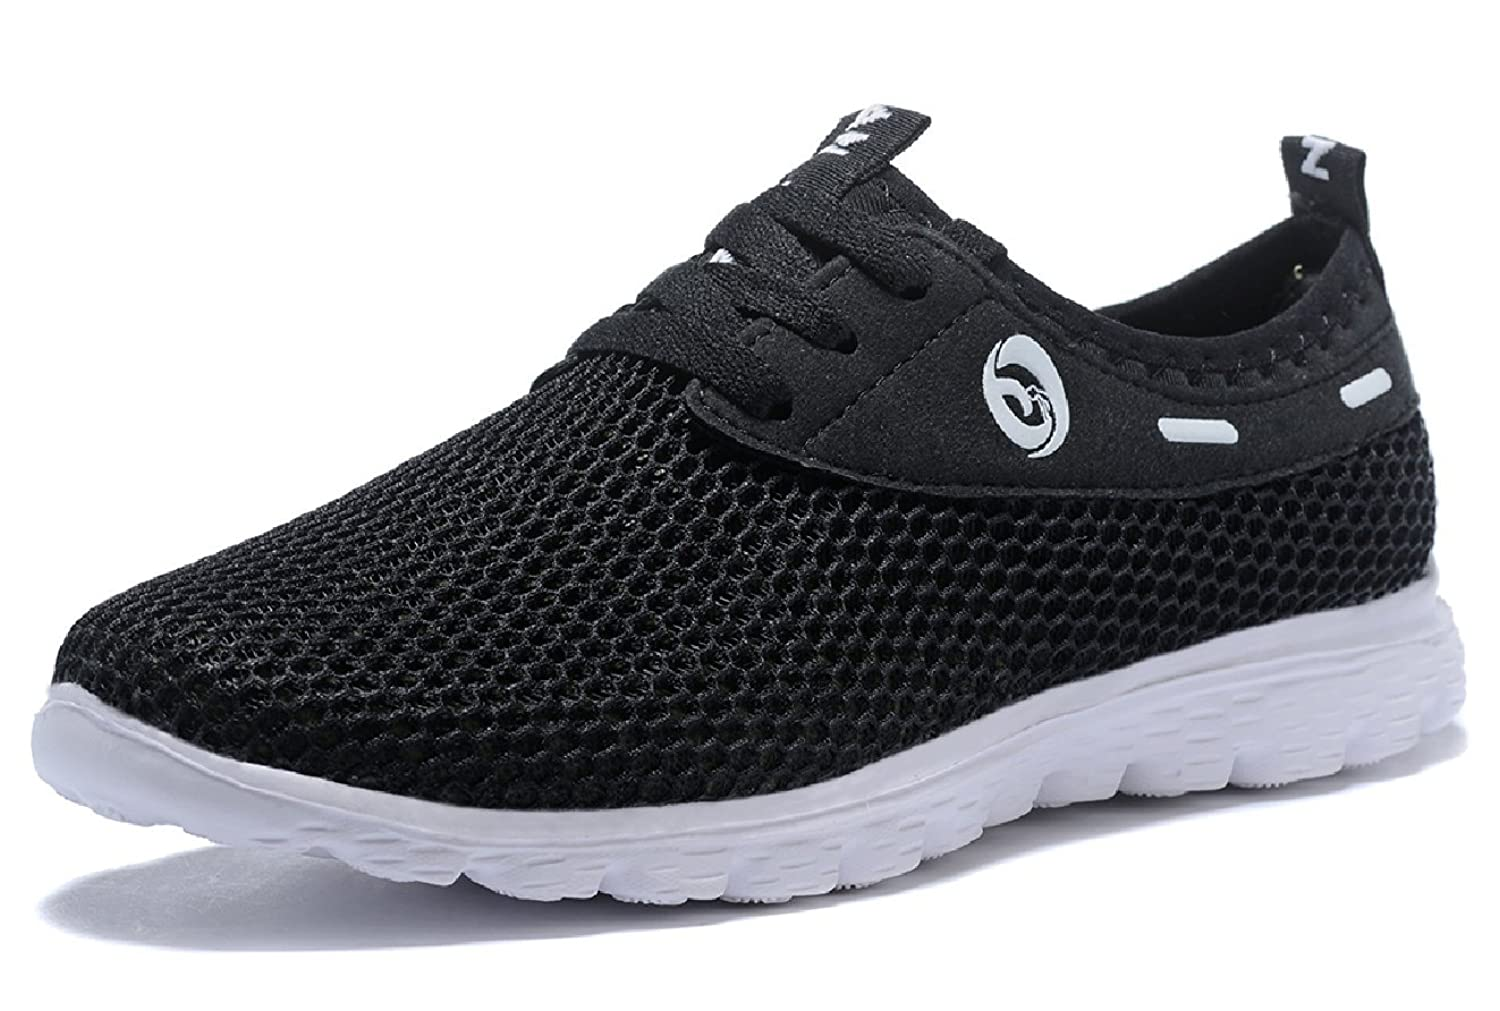 clearance extremely quality free shipping Sports Running Single Casual Shoes - Black 43 outlet footlocker 2014 newest cheap online KceAox